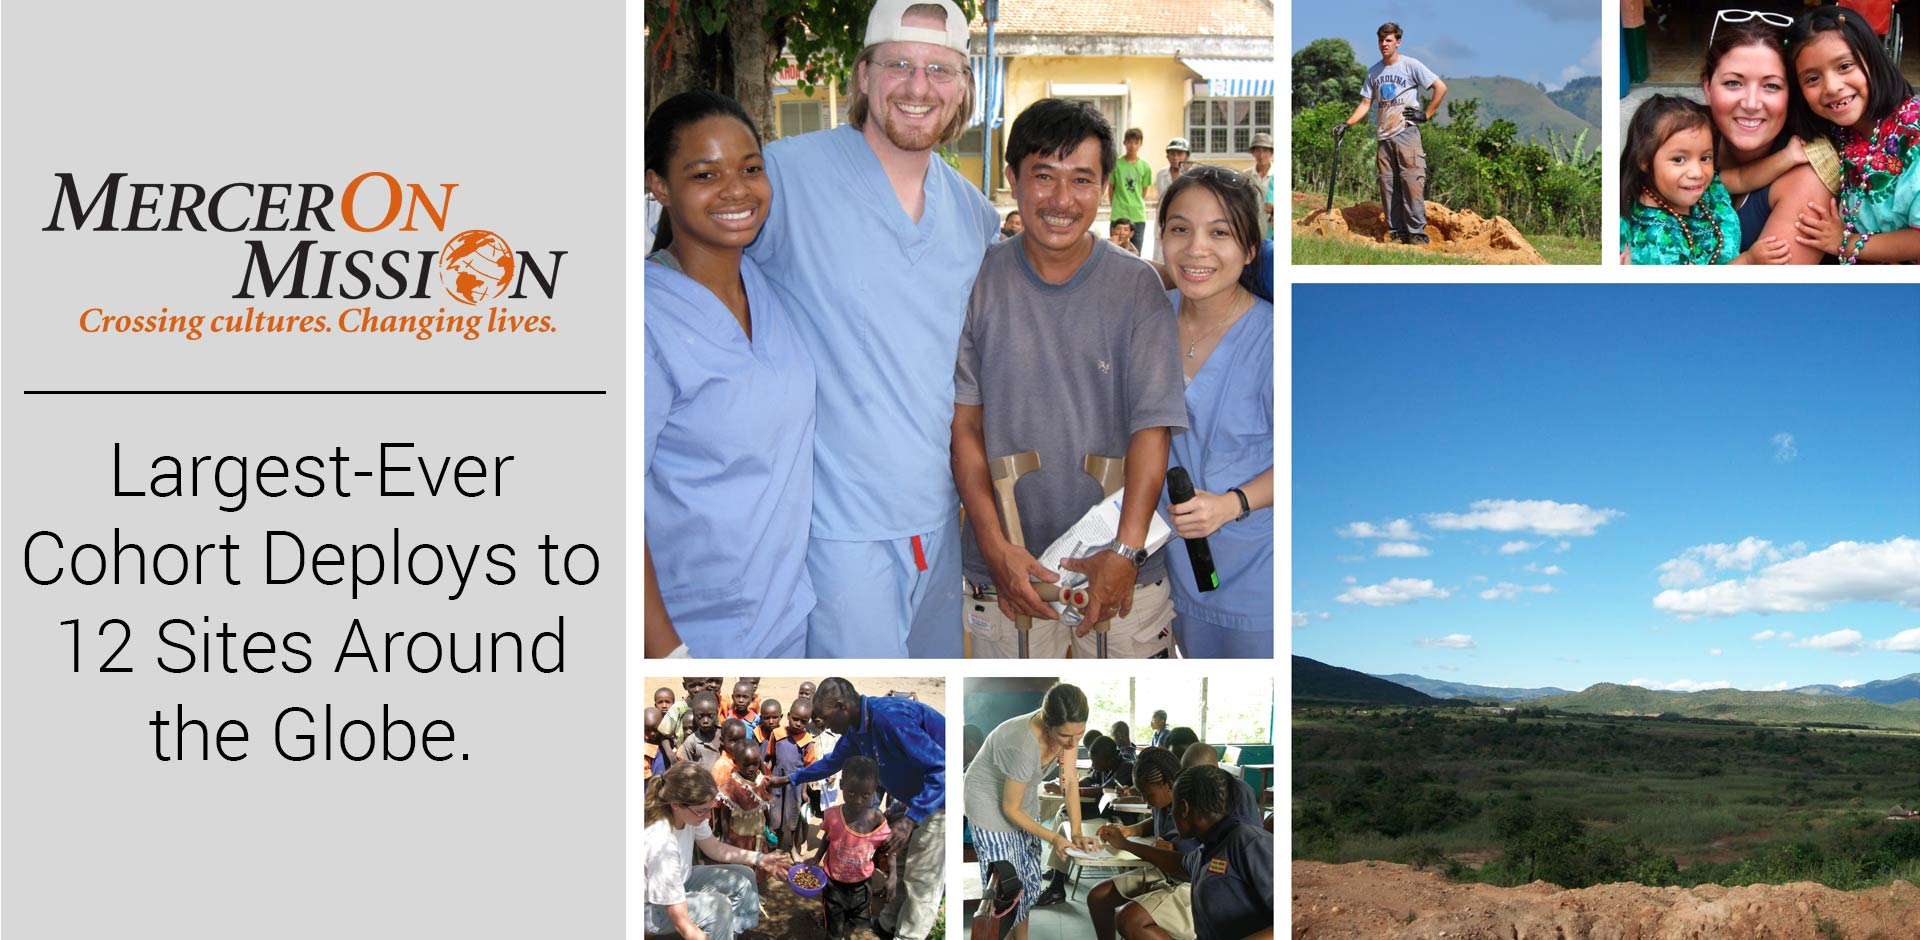 Mercer On Mission to Deploy Largest-Ever Cohort to 12 Sites Around the Globe